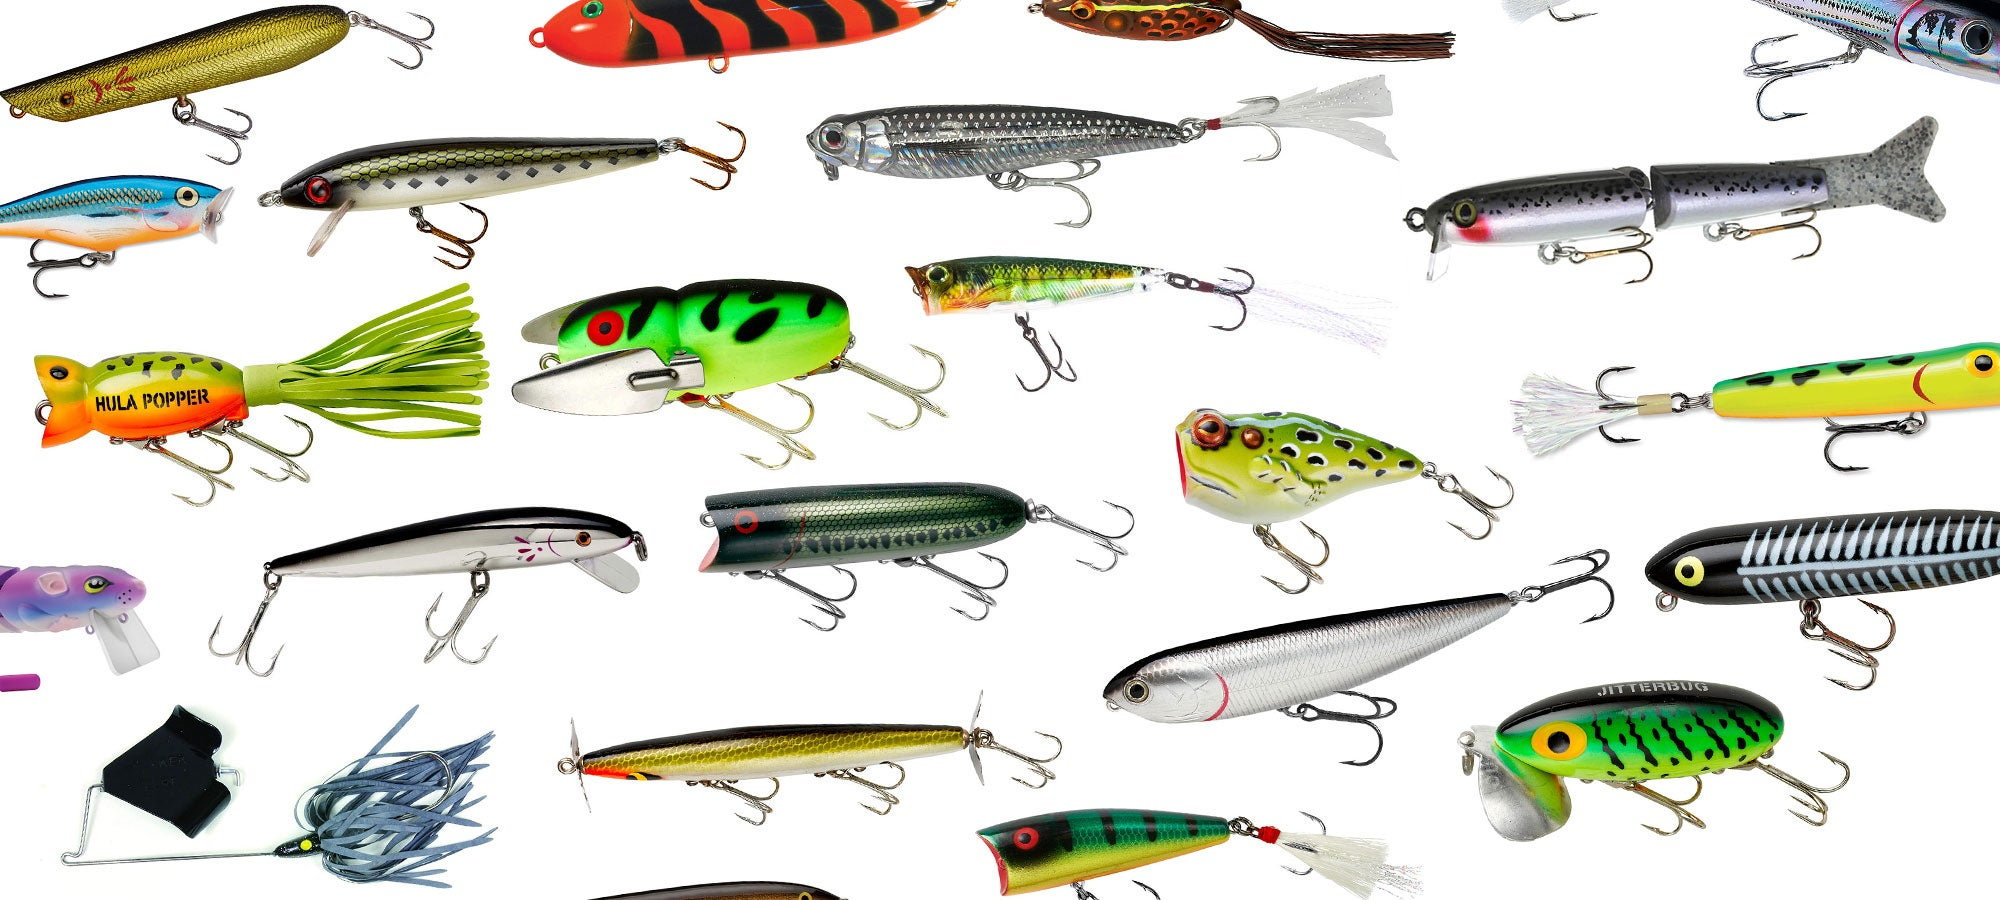 collage of topwater fishing lures